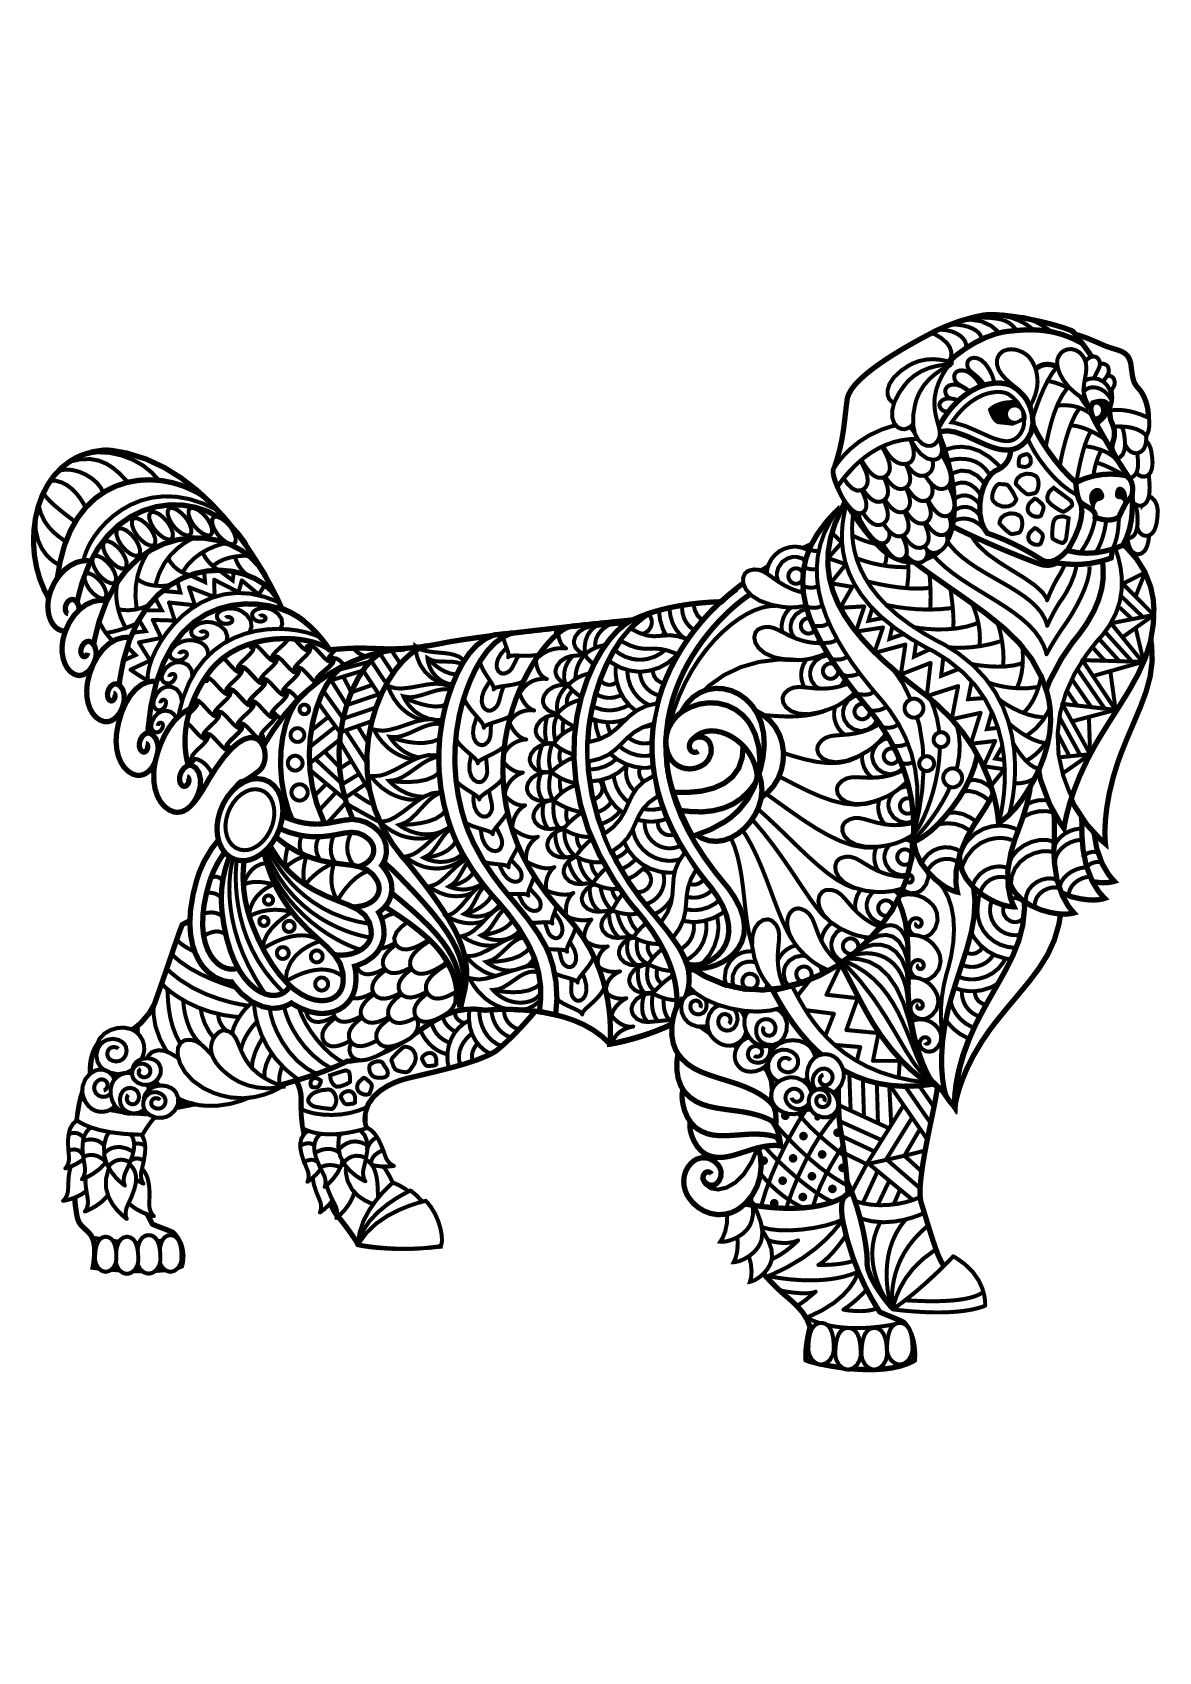 Dogs Free To Color For Kids Dogs Kids Coloring Pages